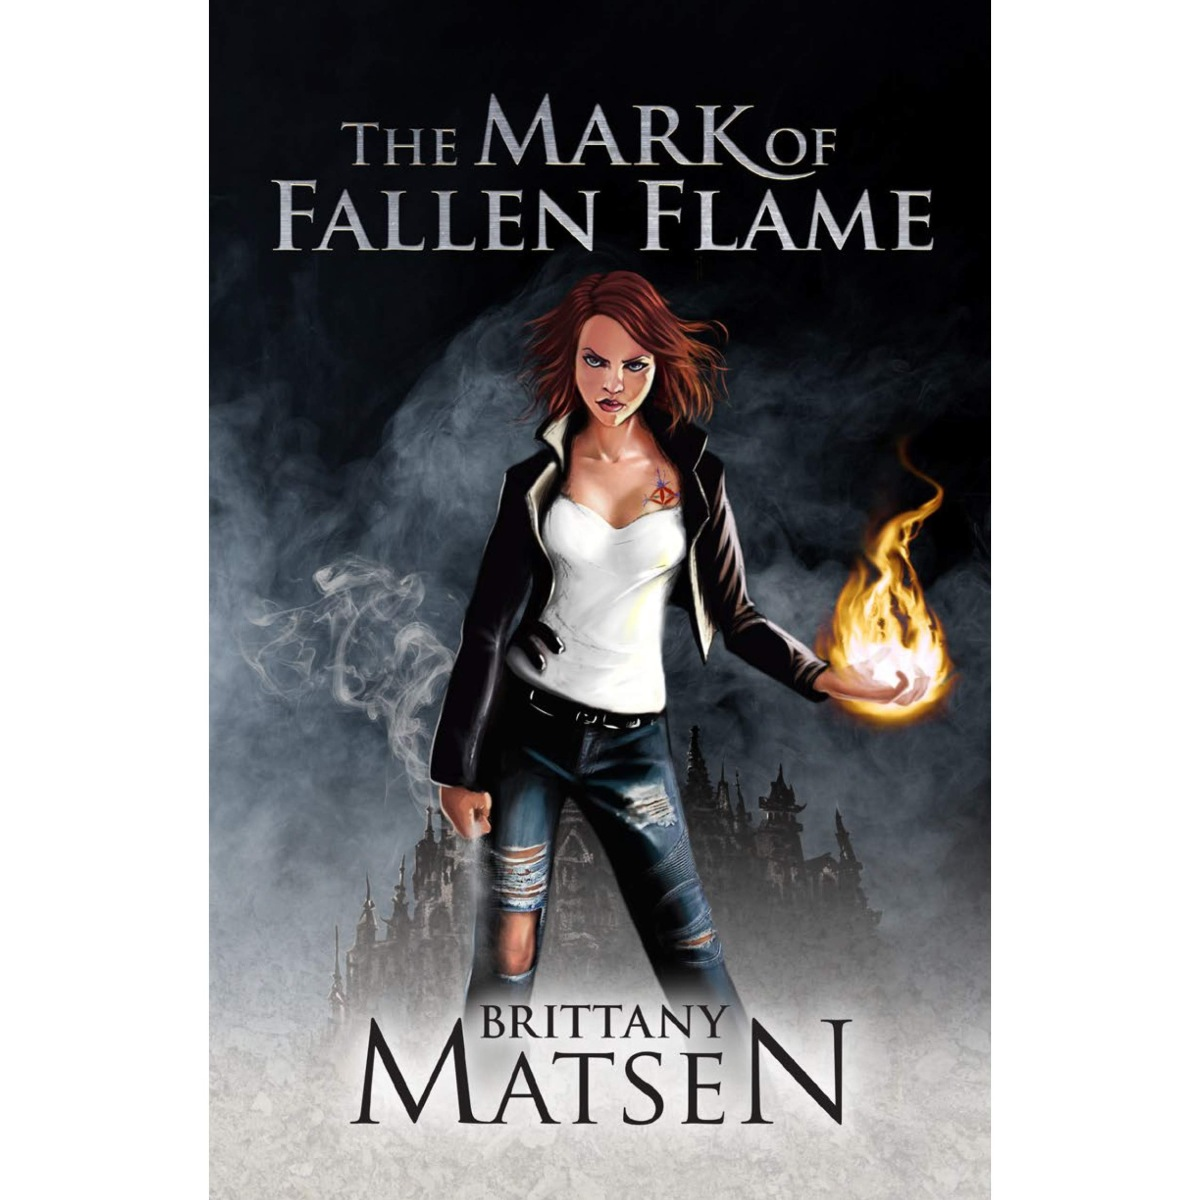 The Mark of Fallen Flame by Brittany Matsen Review